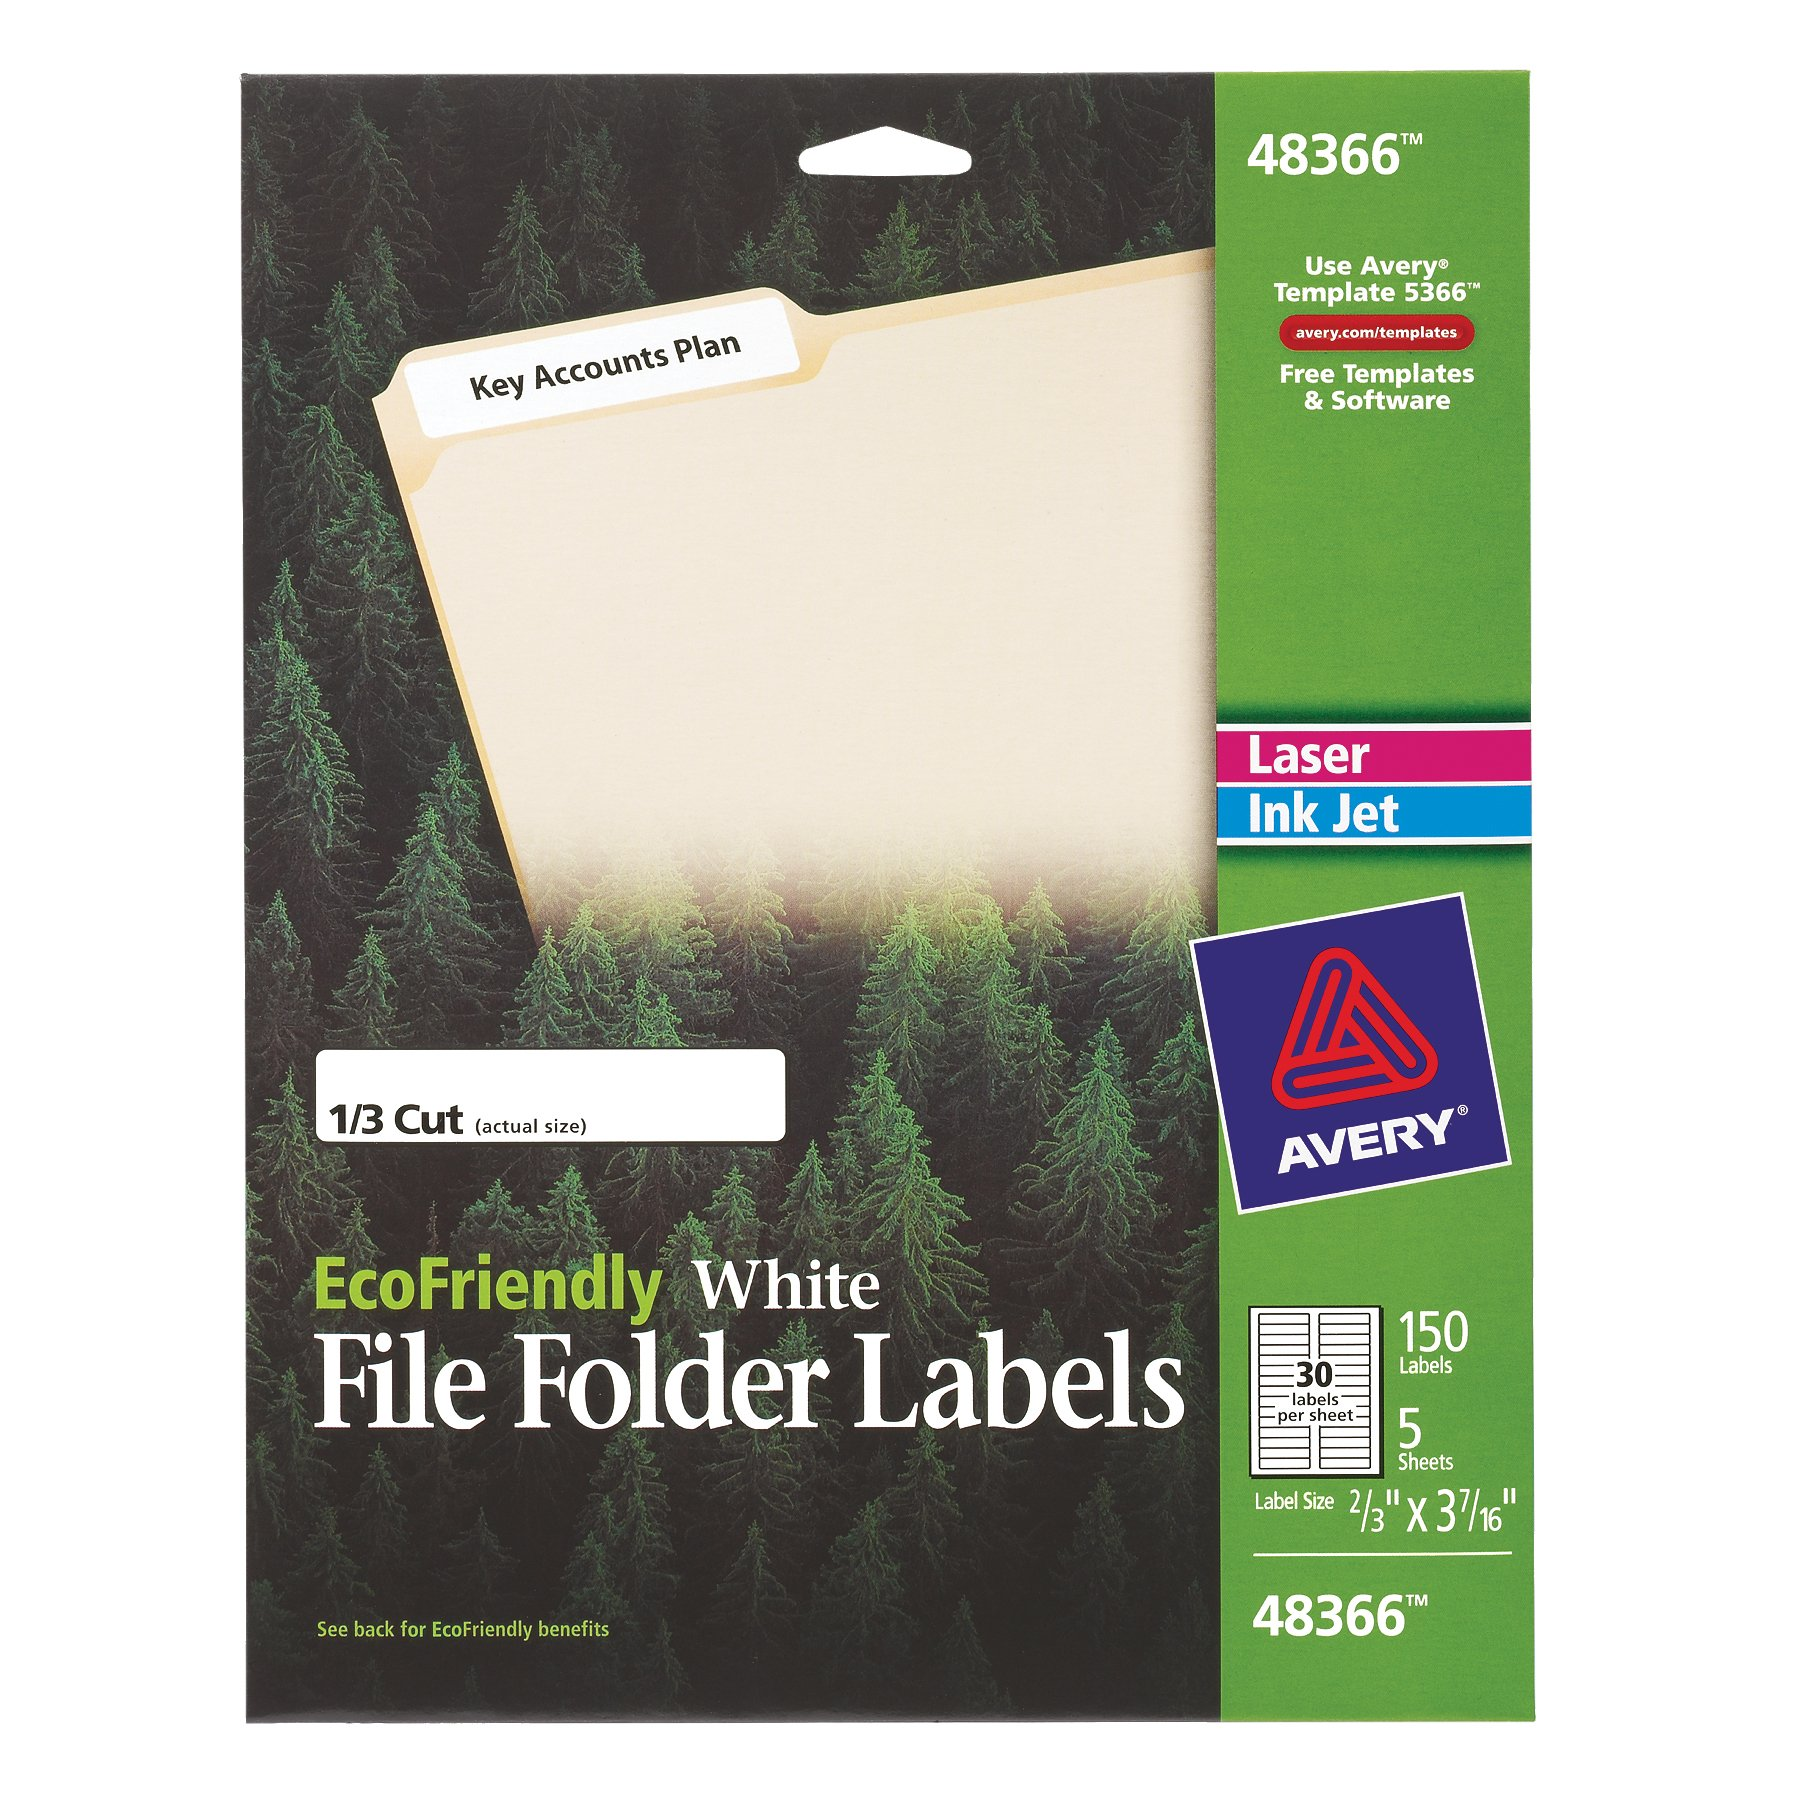 Avery EcoFriendly File Folder Labels for Laser and Ink Jet Printers, 0.66 x 3.4375 Inches, White, Permanent, Pack of 150 (48366)